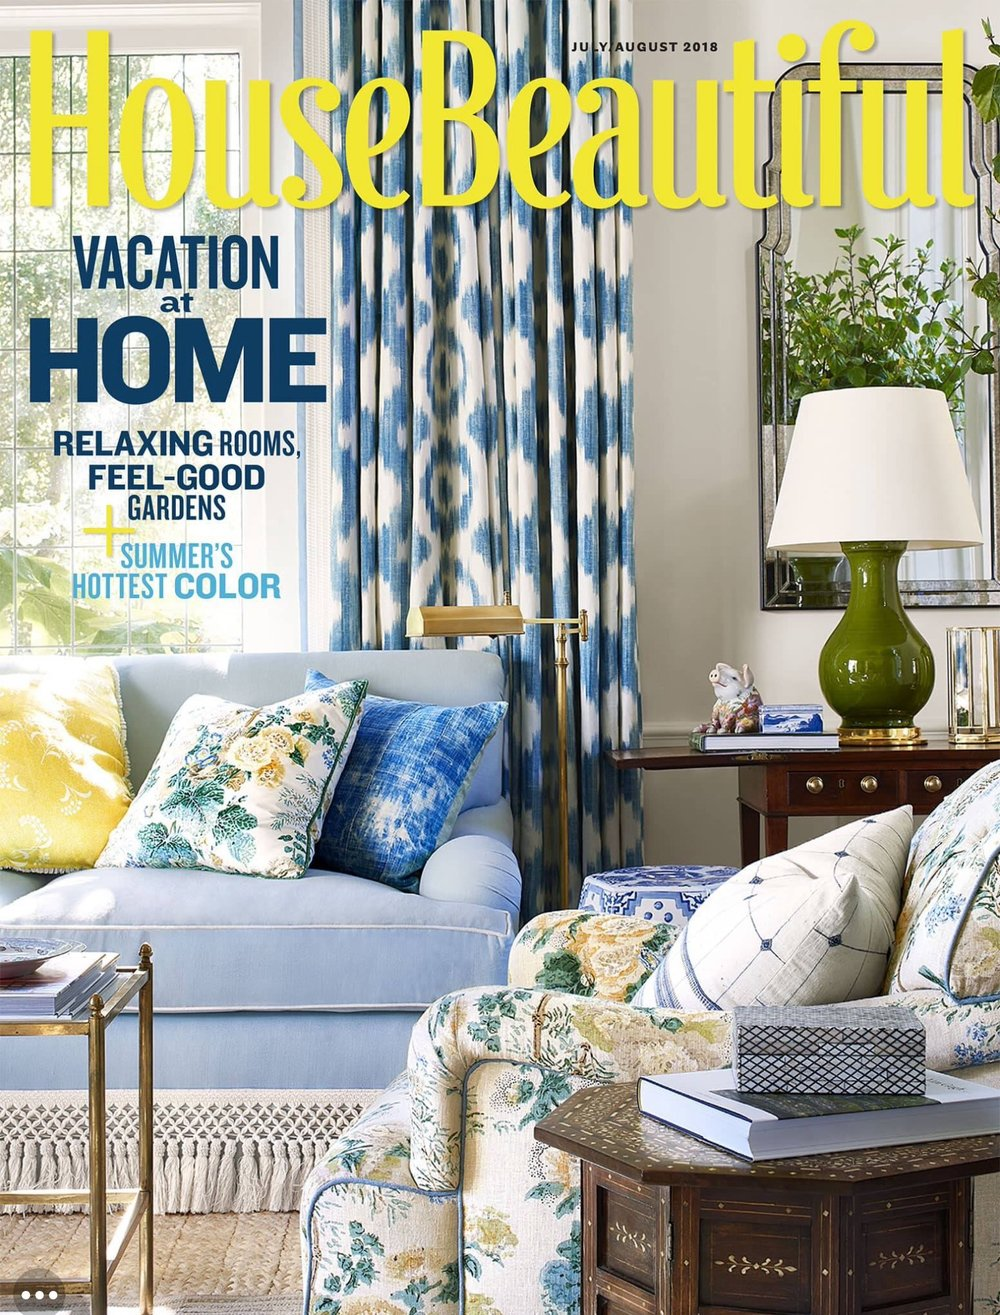 House Beautiful July/August 2018